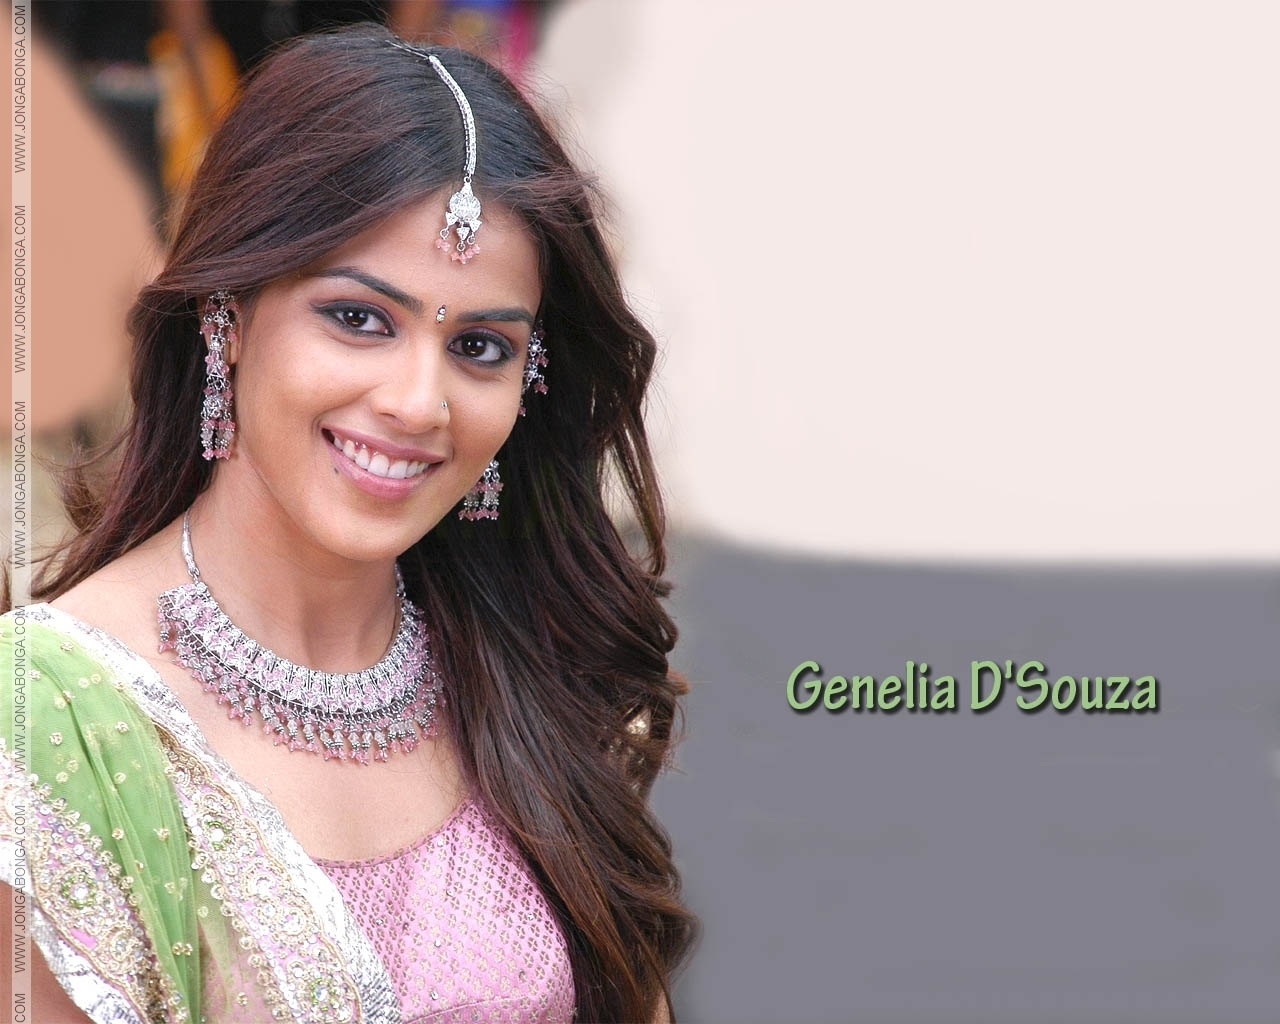 genelia d'souza images genelia hd wallpaper and background photos